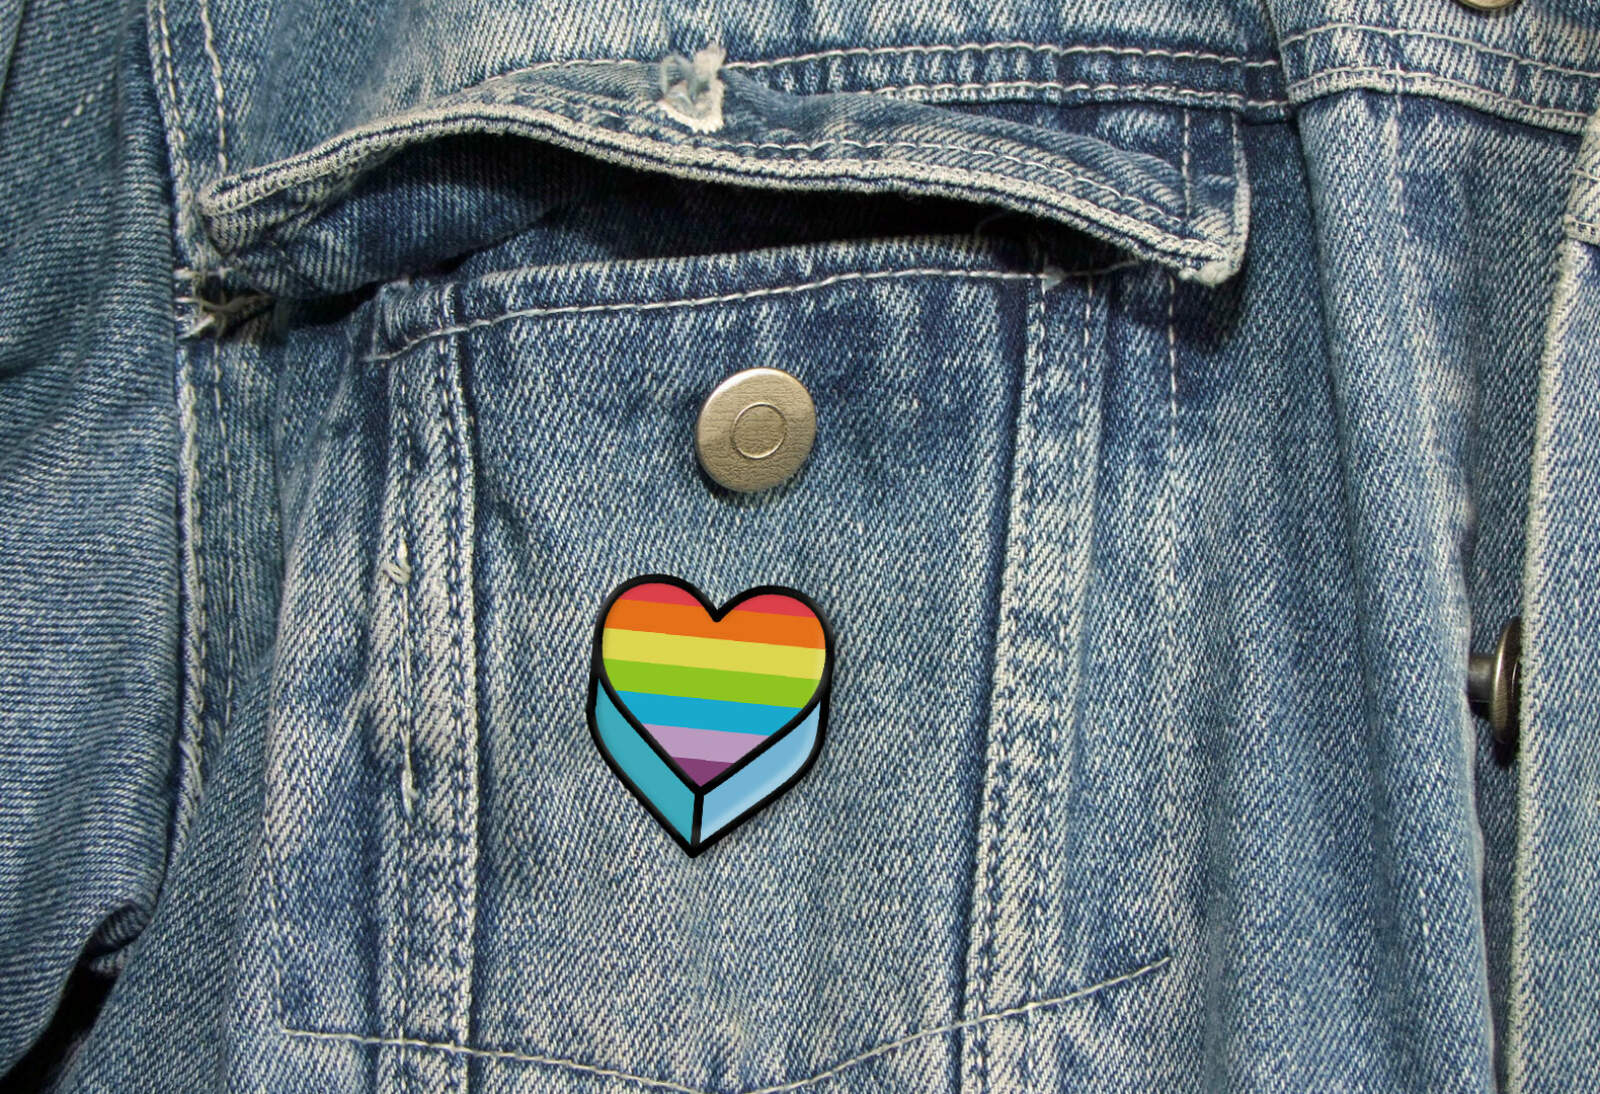 A Penguin Pride pin badge.